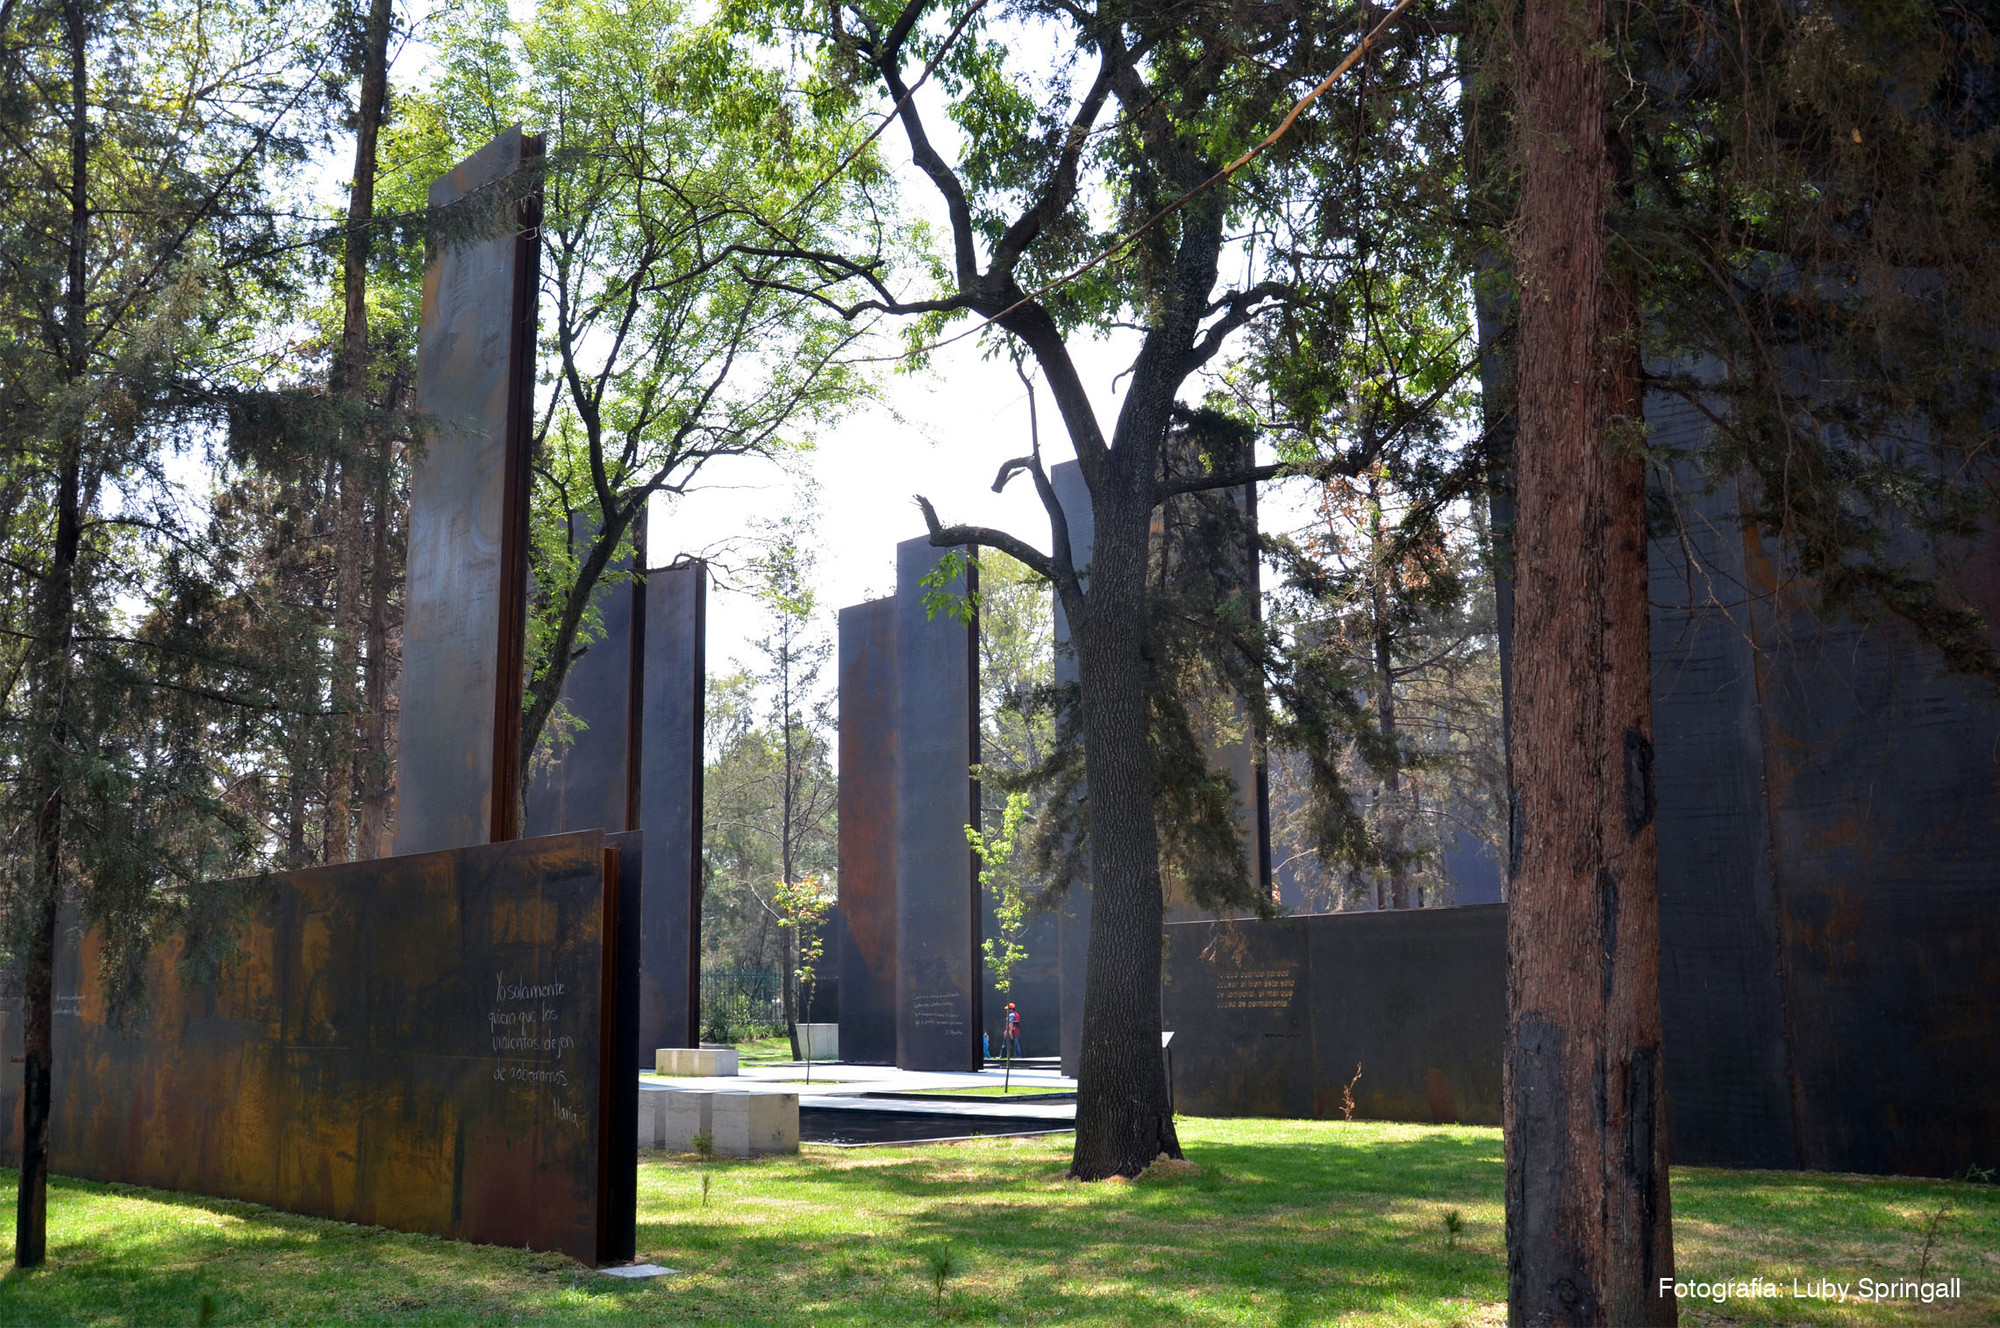 Memorial To Victims Of Violence / Gaeta-Springall Arquitectos, Courtesy of Gaeta-Springall Arquitectos